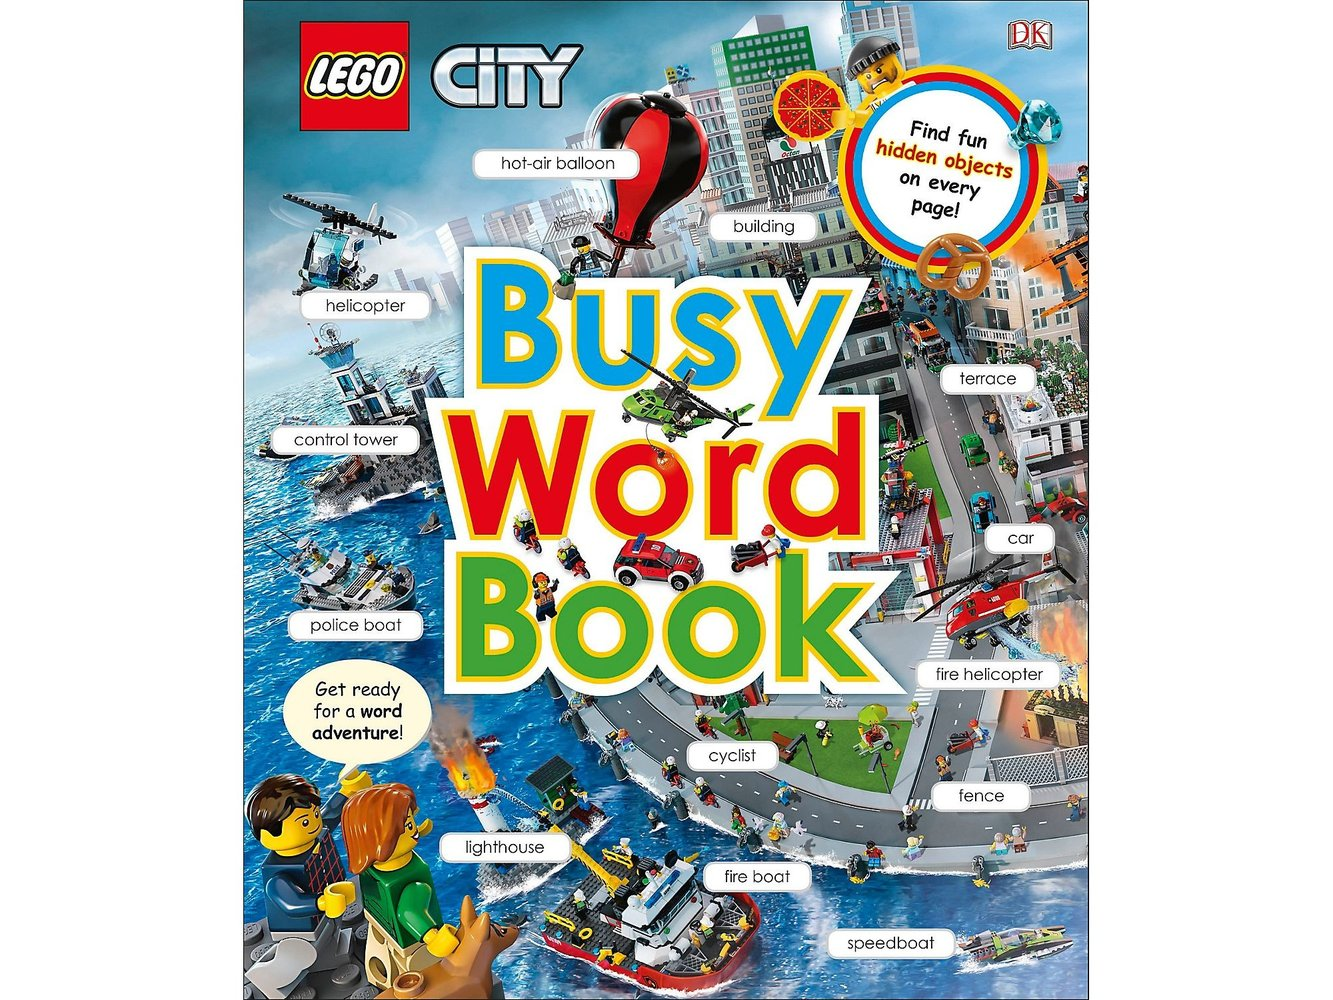 City: Busy Word Book